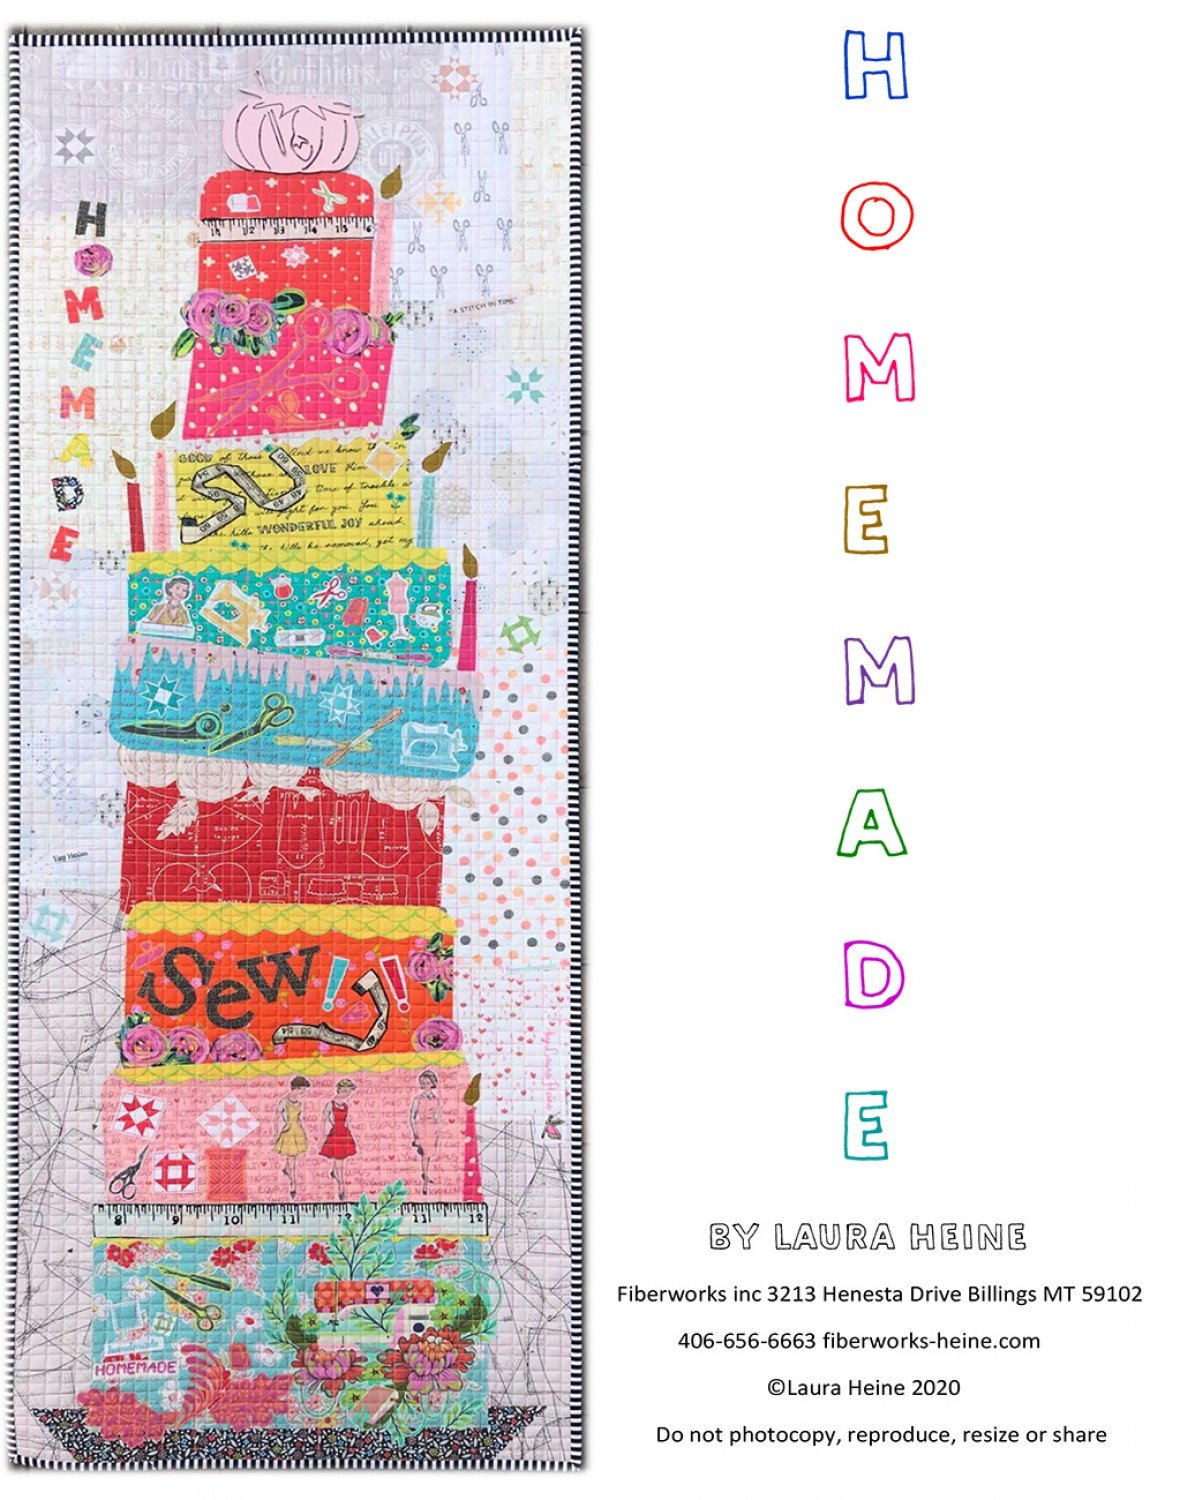 Homemade Collage Pattern By Laura Heine  ~ RELEASE DATE JUL 15/20 ~